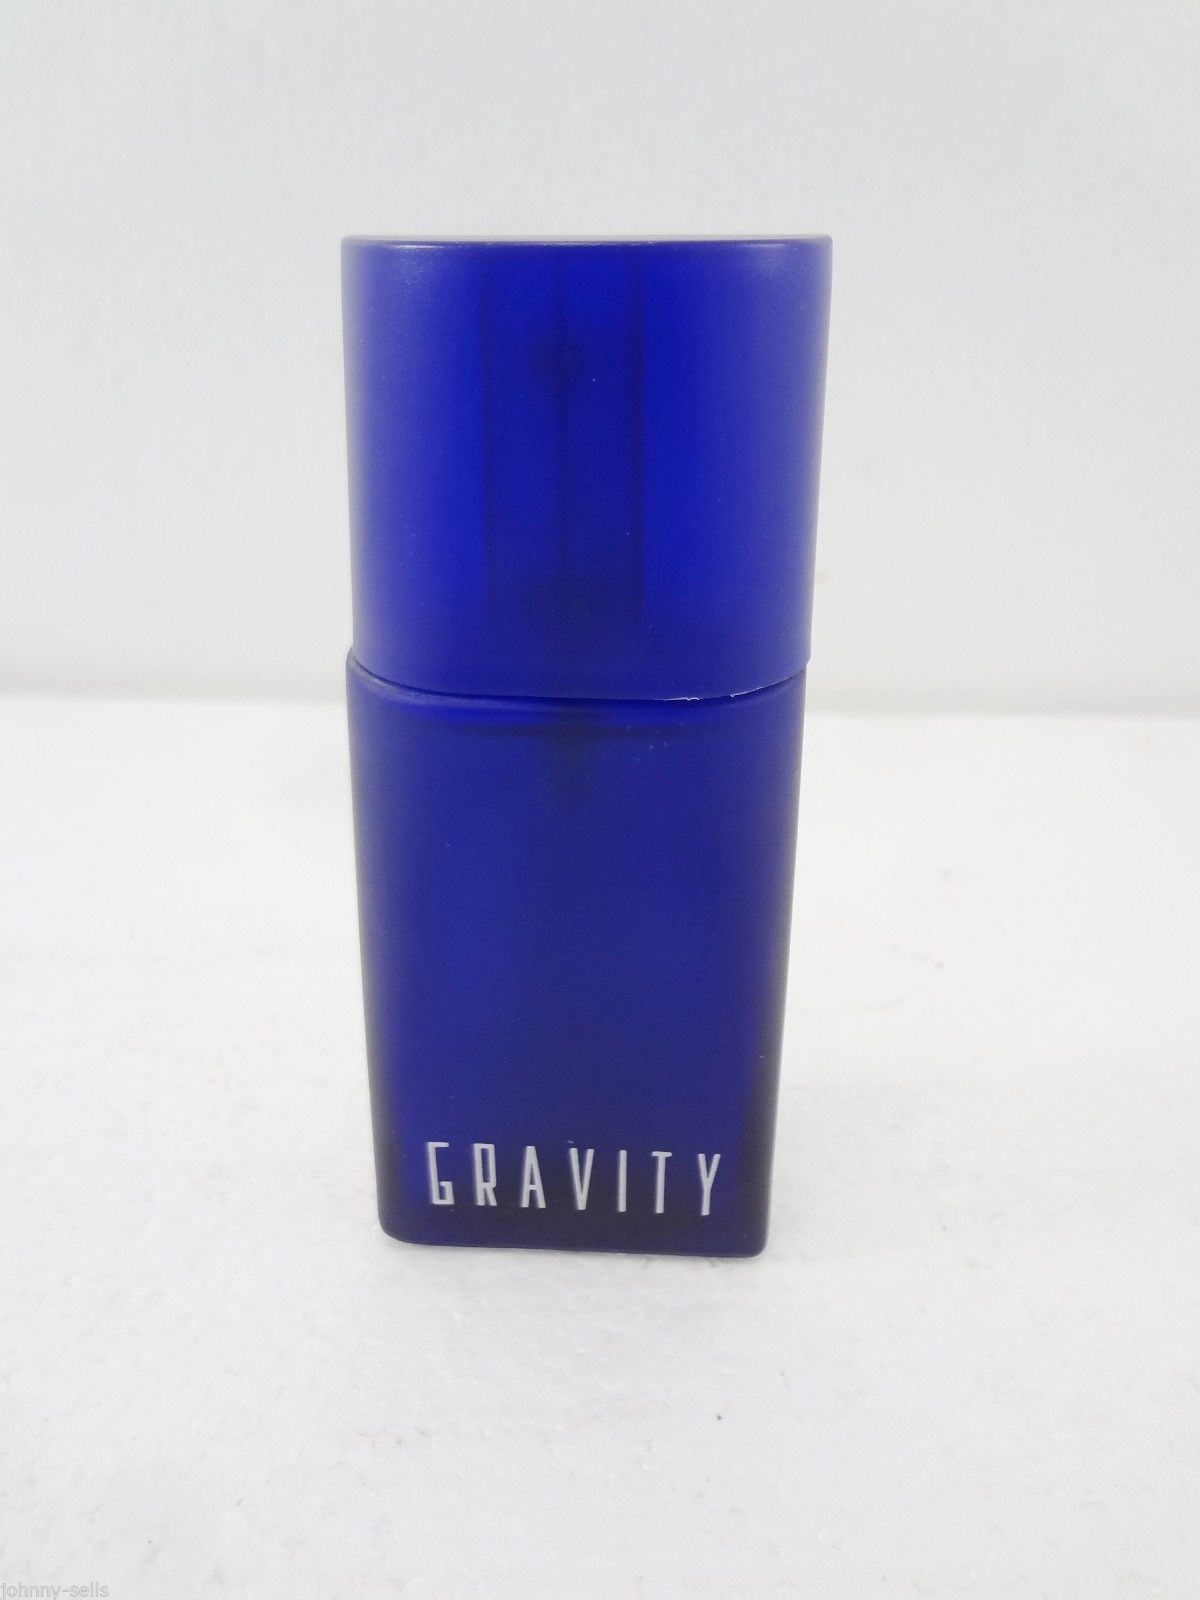 Gravity by Coty Mens Cologne Spray 1.6 fl. oz Bareiss #614 Almost Full